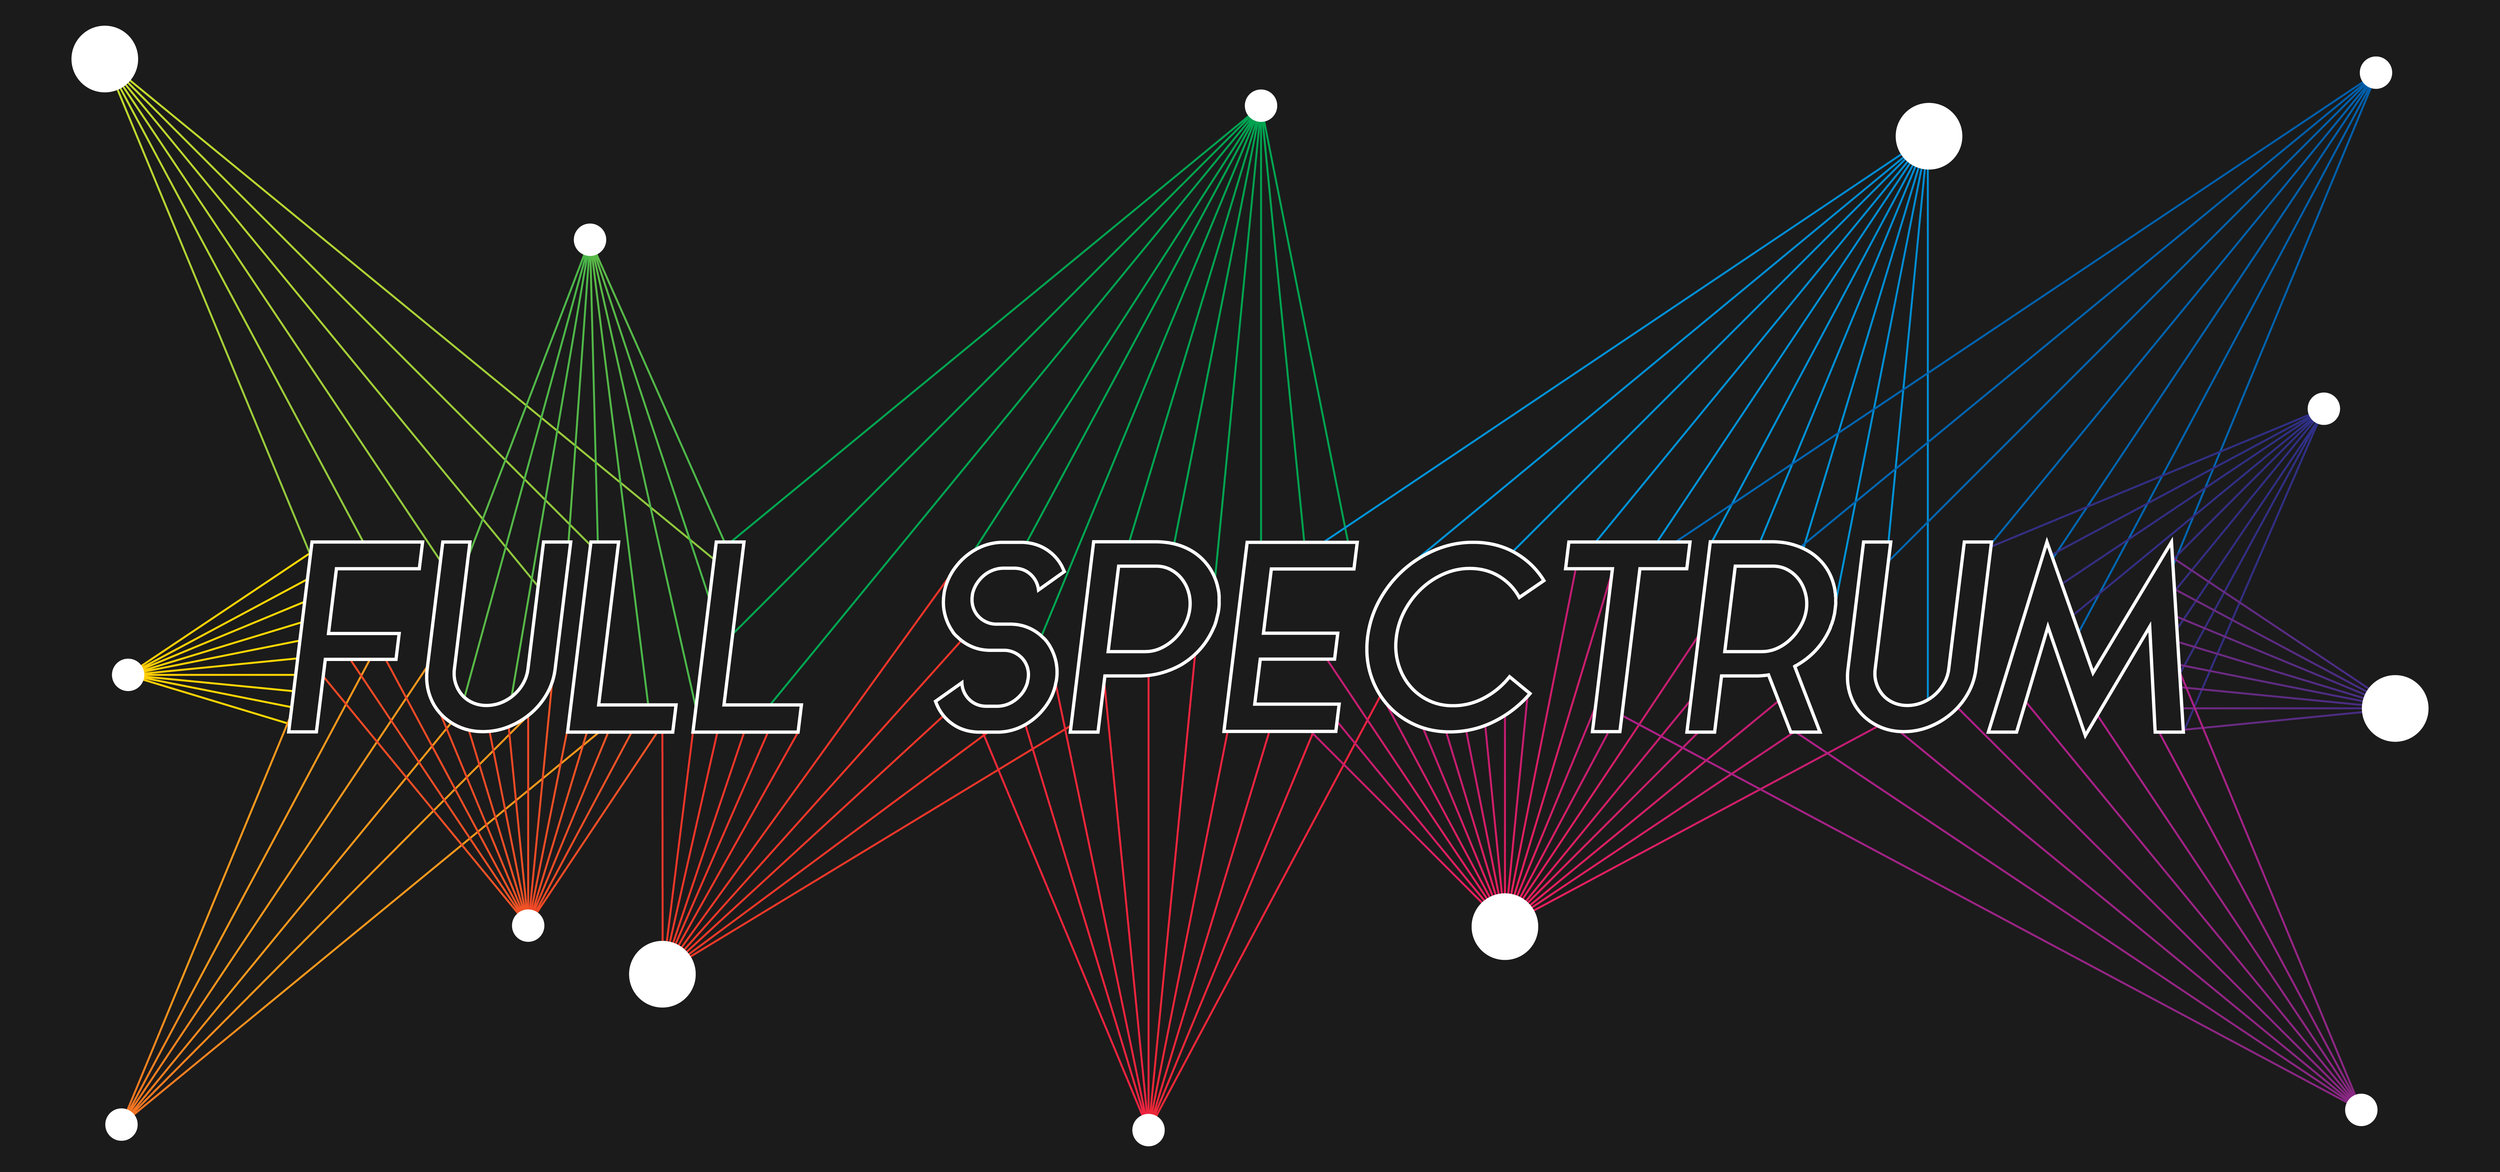 full-spectrum-logo.jpg